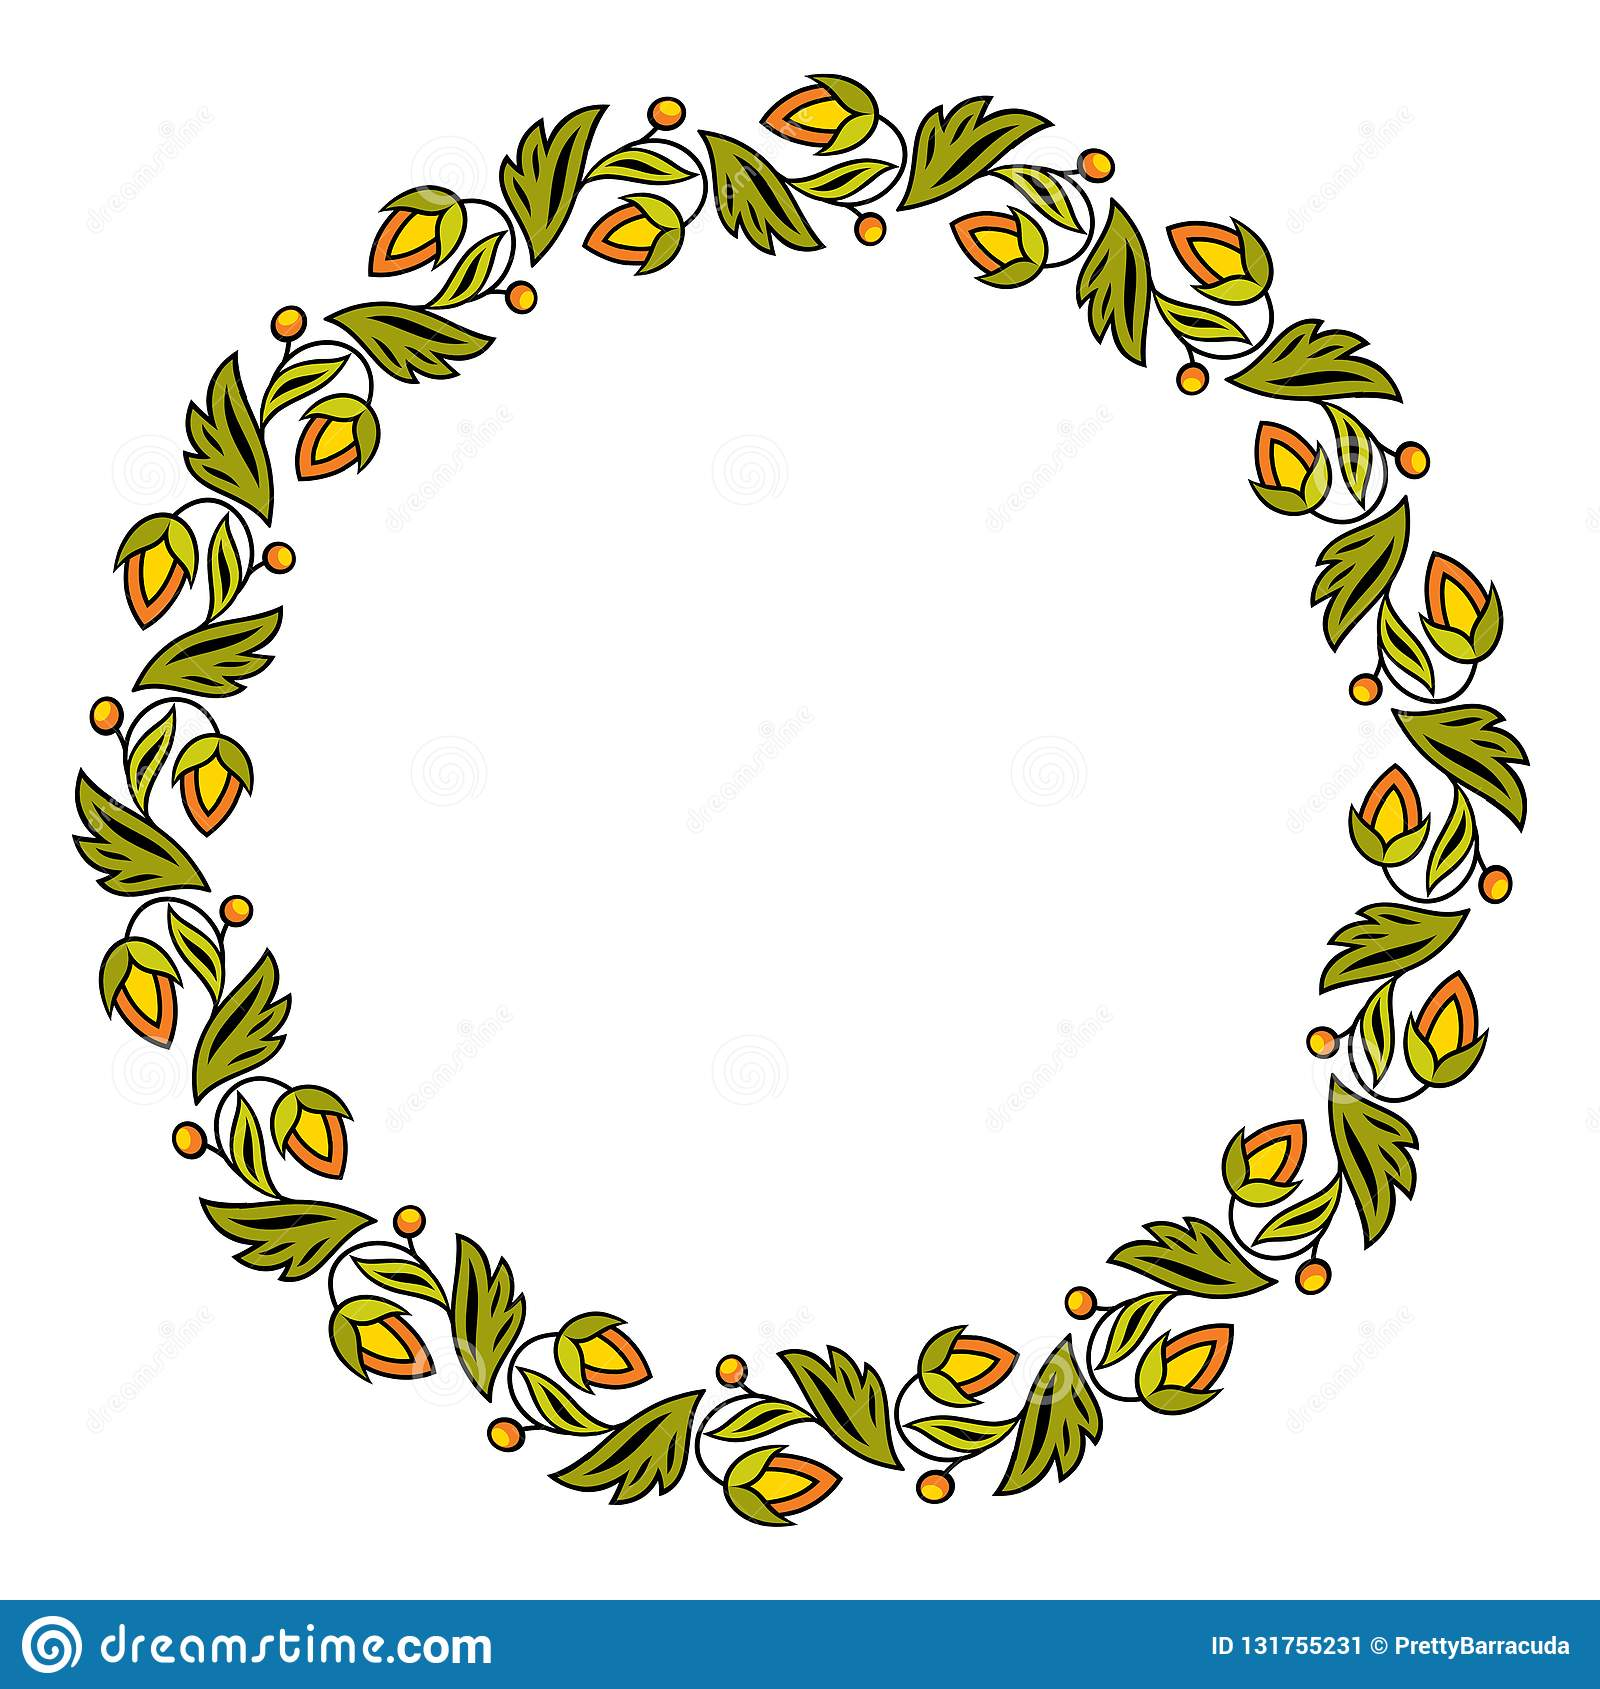 Simple round colorful floral frame wreath vector illustration